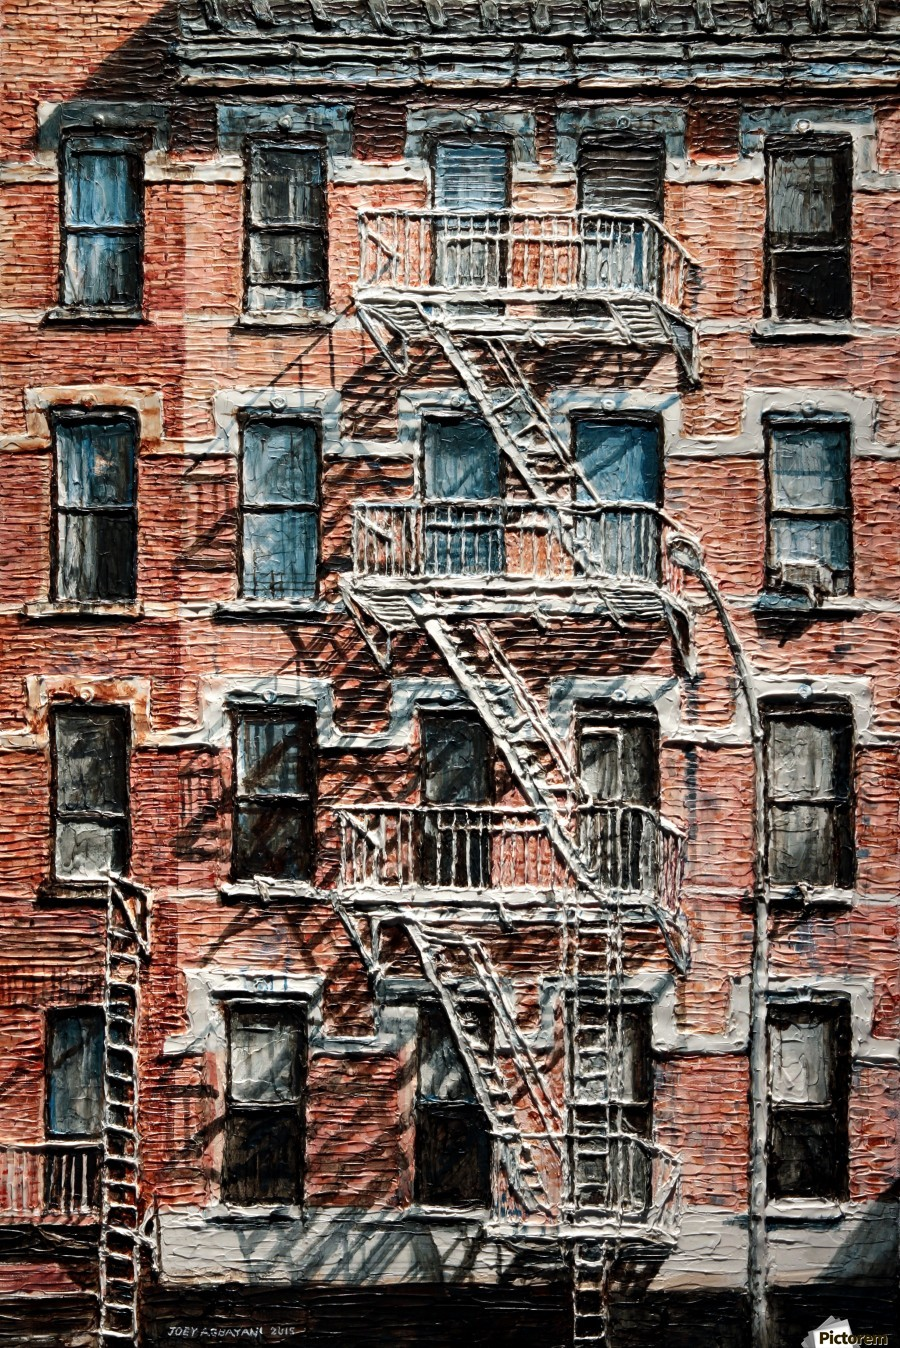 nyc apartment buildings. Canvas print N Y C Apartment On 9th Ave  Joey Agbayani